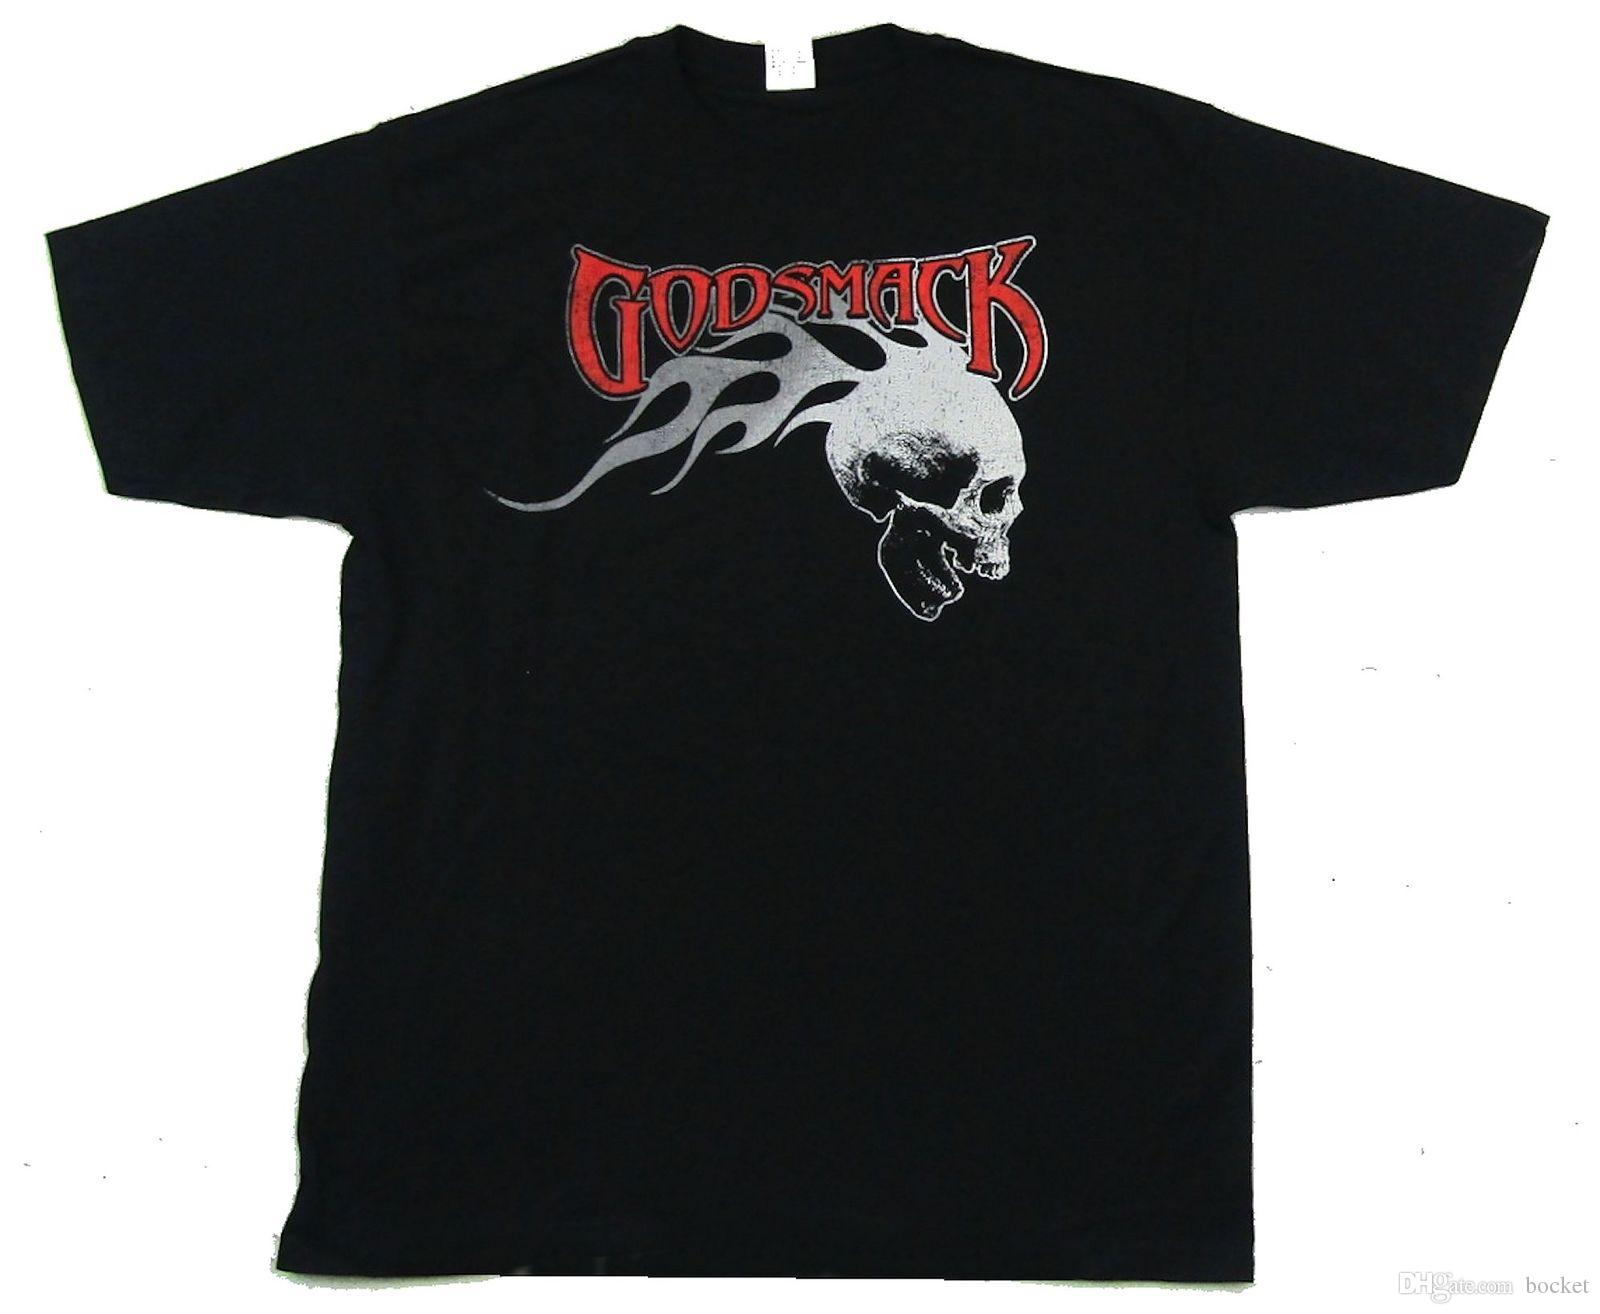 7866191a88 Godsmack Distressed Flame Skull Black T Shirt New Official Band Merch  Printing Tee Shirts Cool Funny T Shirts From Bocket, $11.25| DHgate.Com